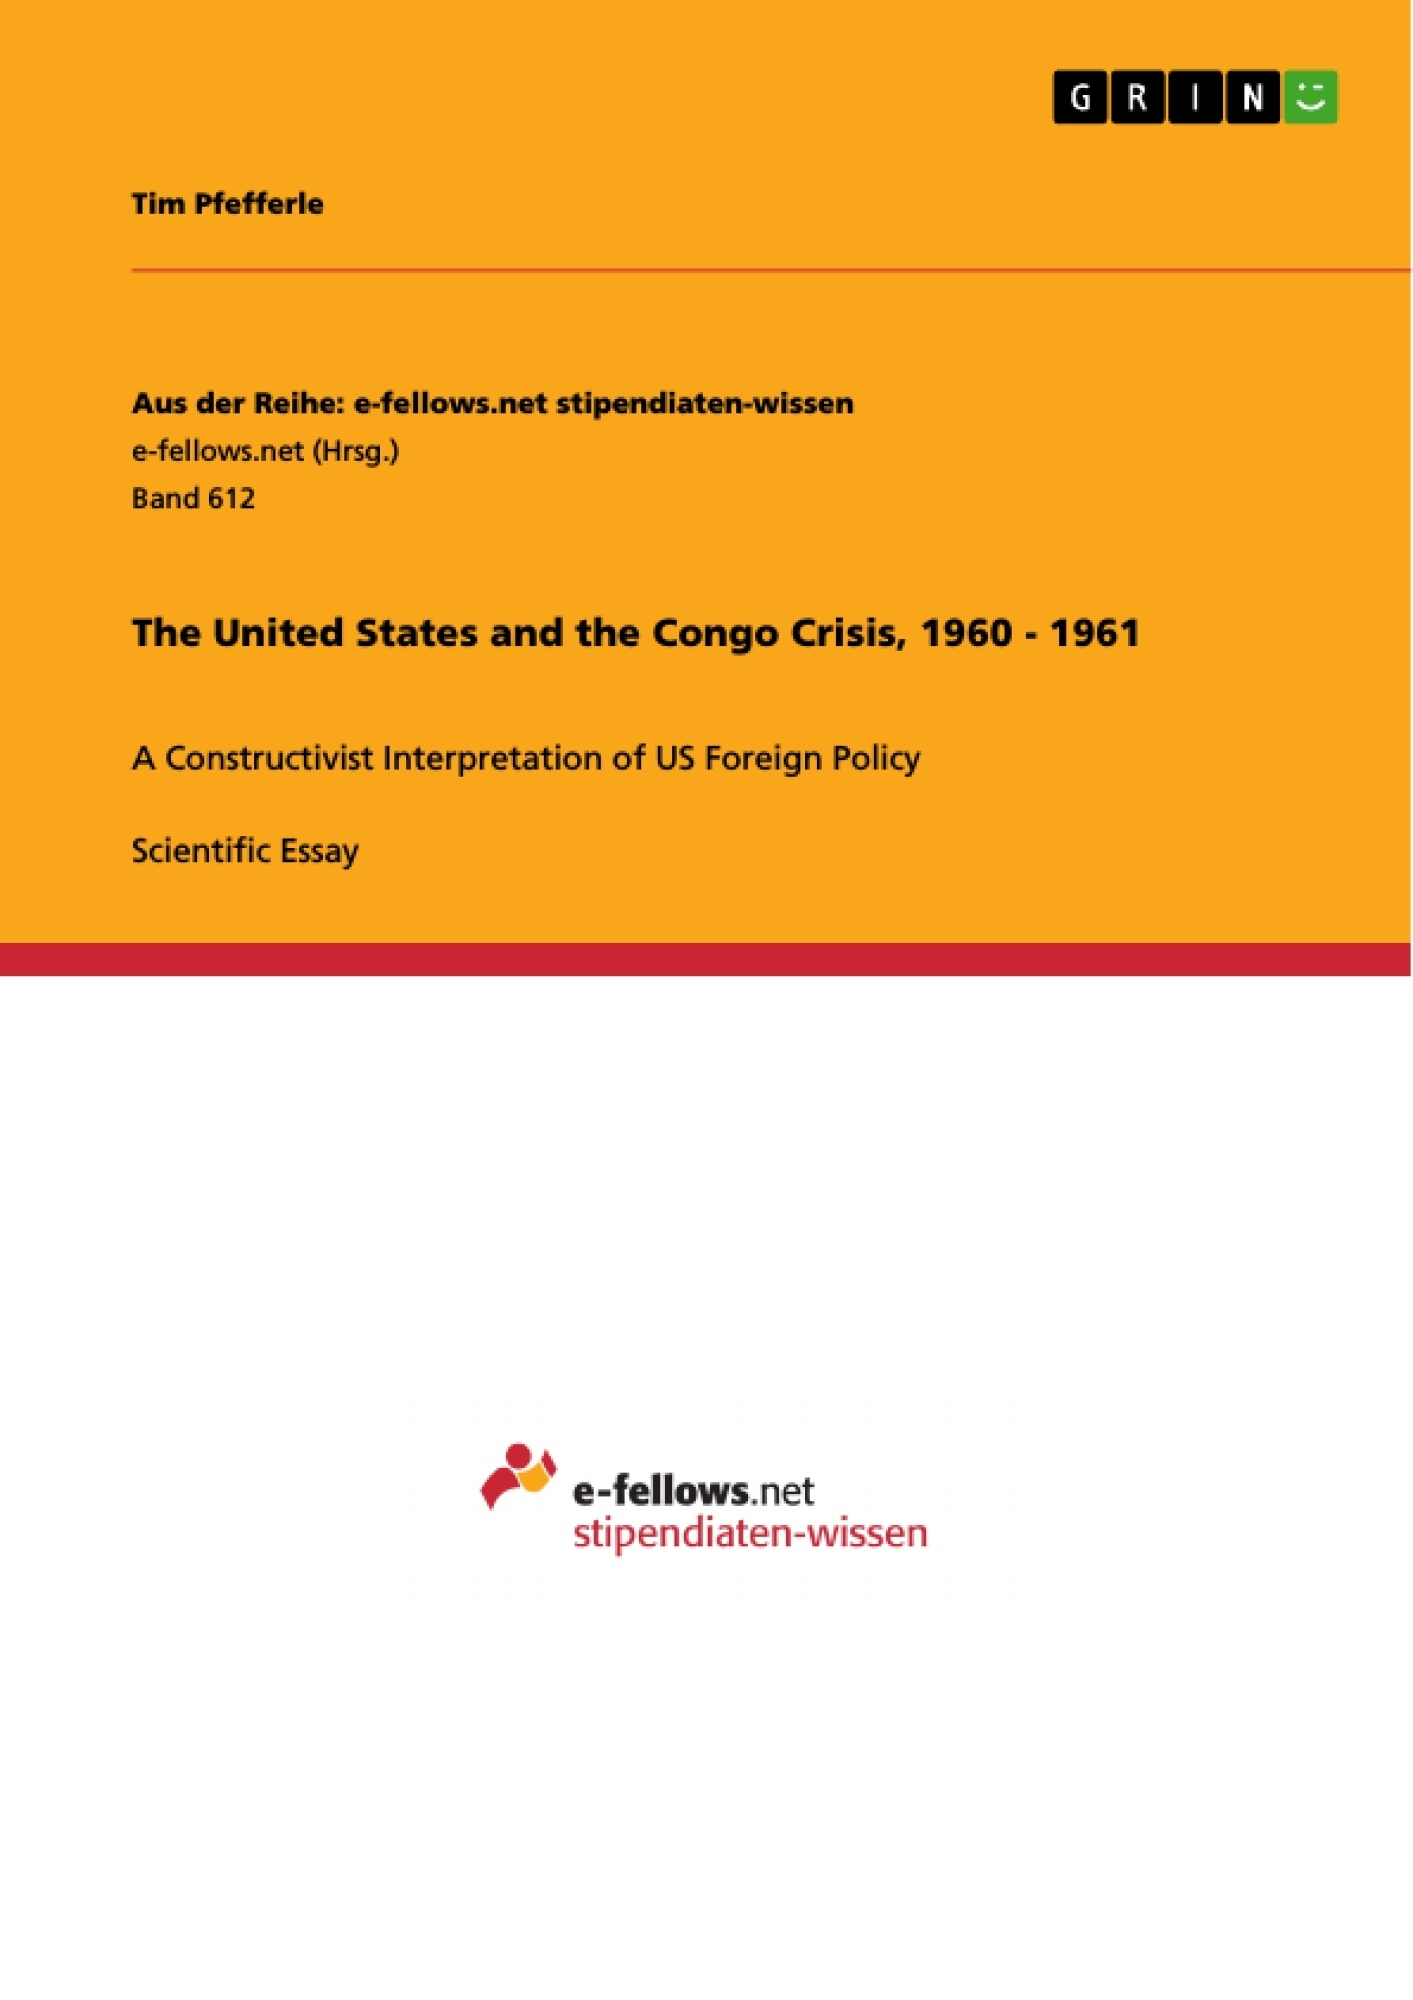 Title: The United States and the Congo Crisis, 1960 - 1961